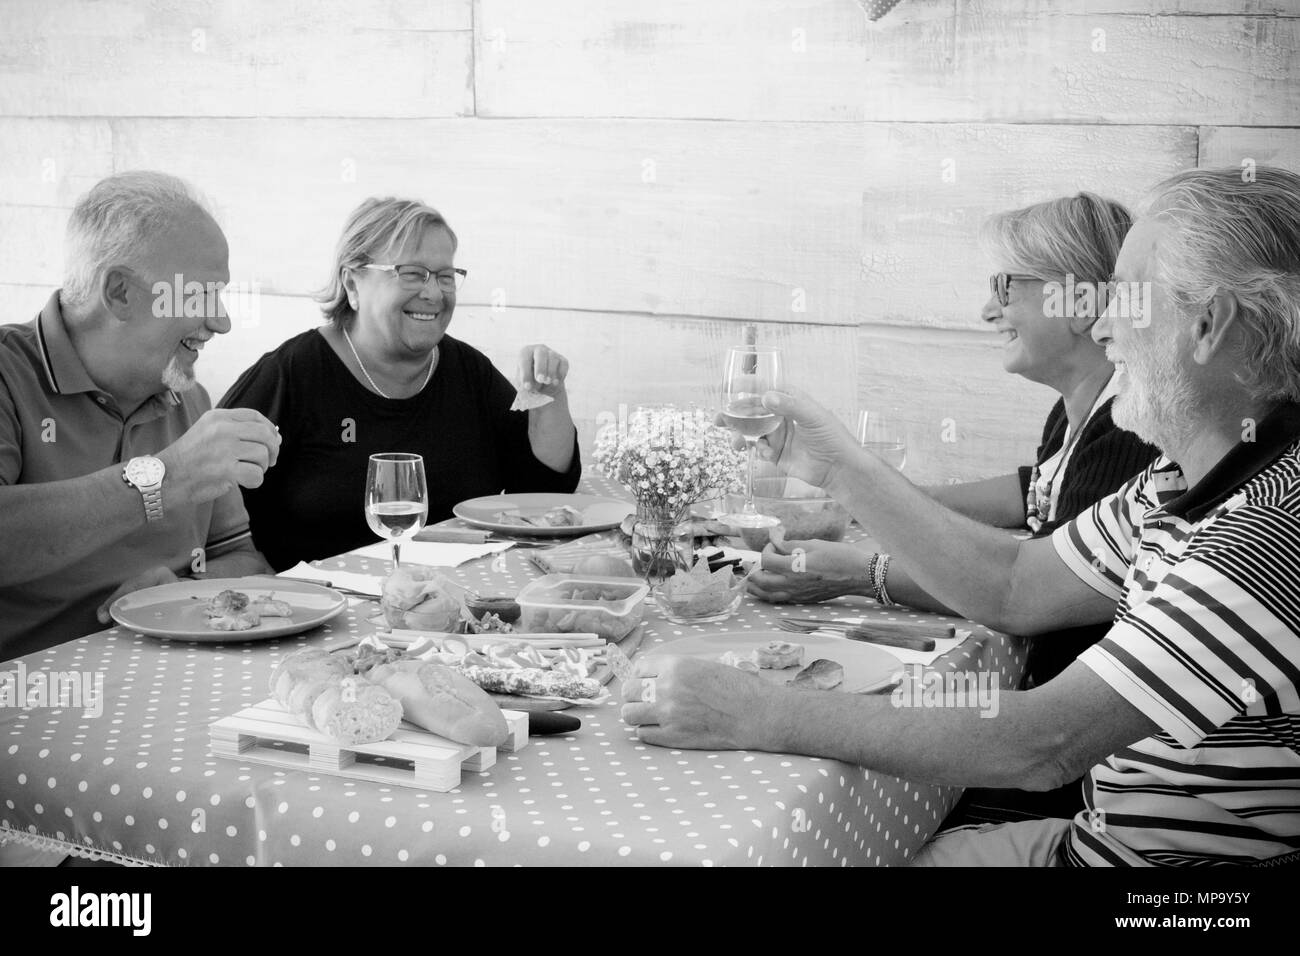 home scene for a group of senior in black and white. Eating and laughing together with cups of wine and food. nice time with people and tasty things o - Stock Image